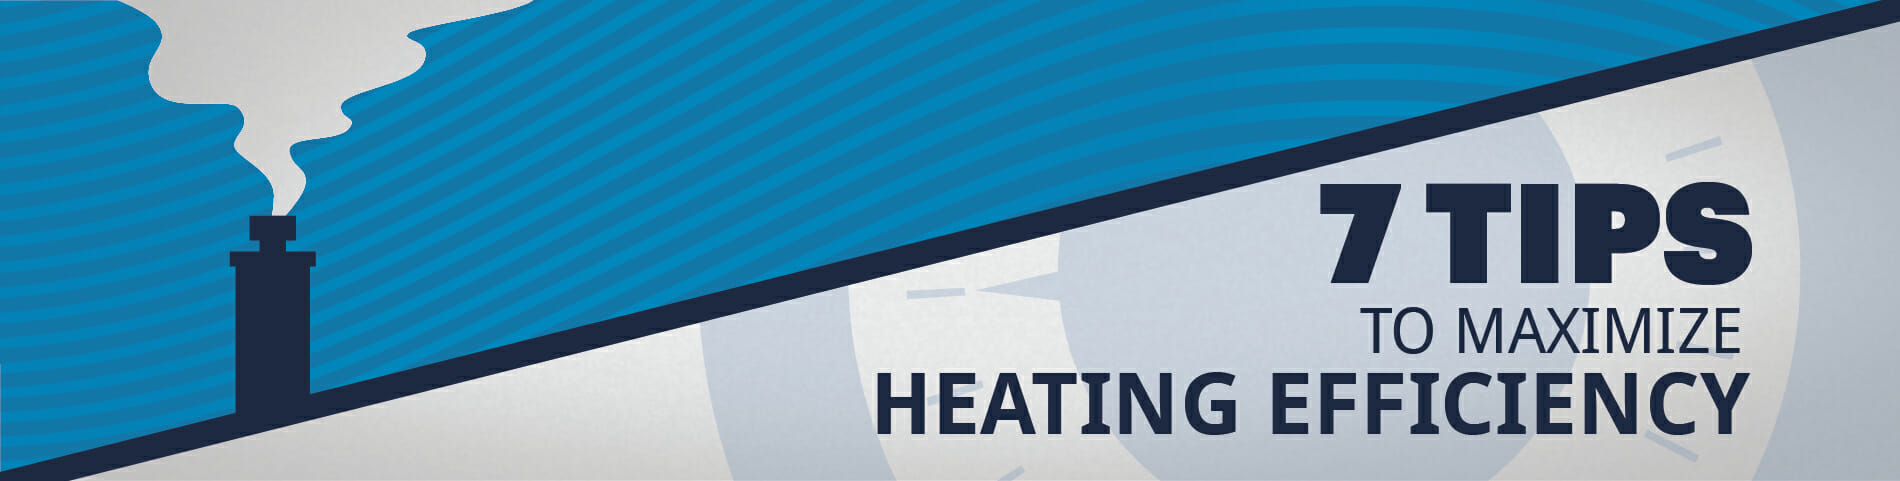 7 Tips to Maximize Heating Efficiency!